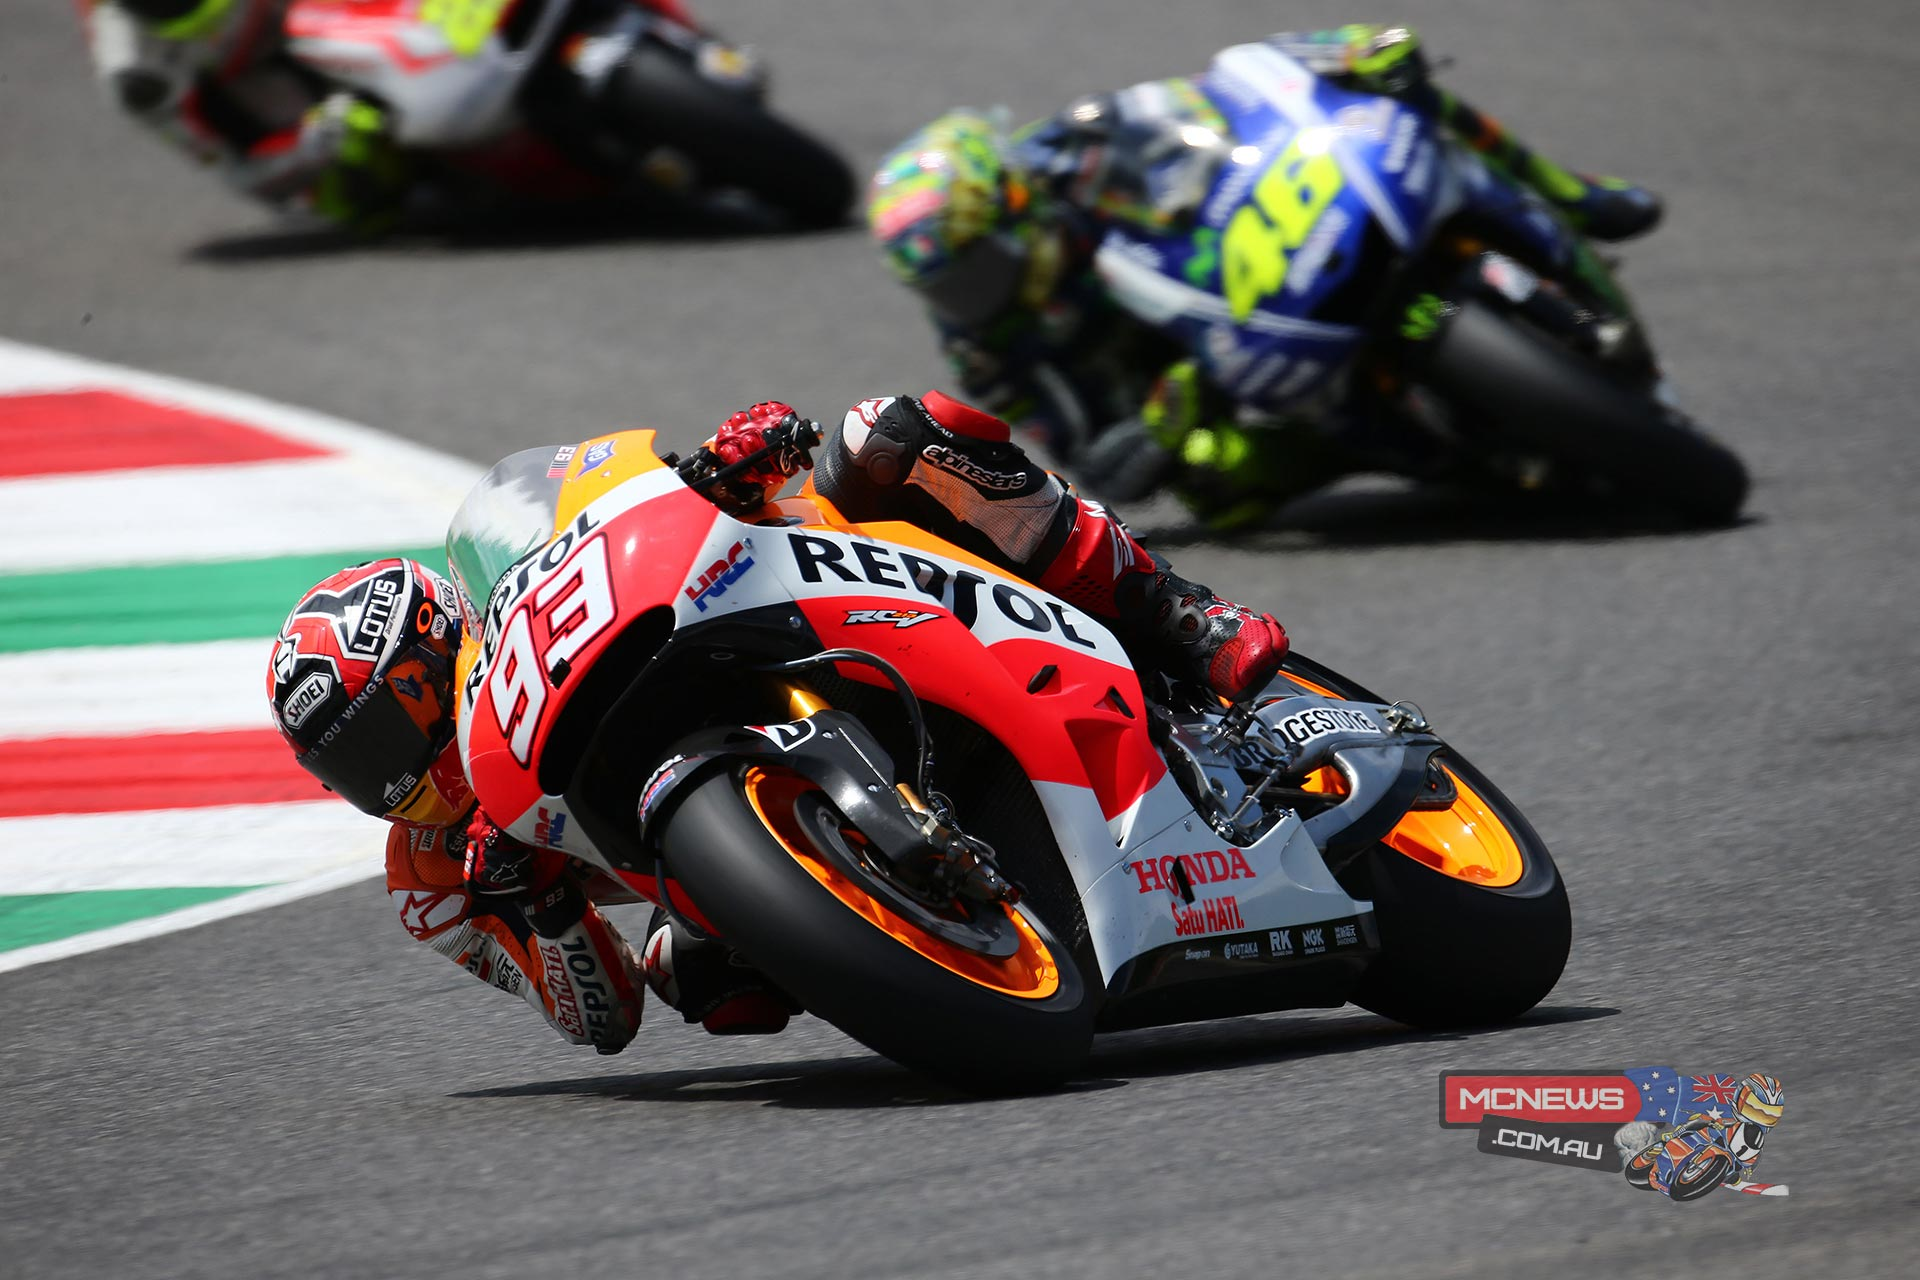 With the MotoGp season now officially one third complete there really has been only one topic of conversation; the total lock-out of pole positions and wins by the Spanish wunderkind, Marc Marquez.